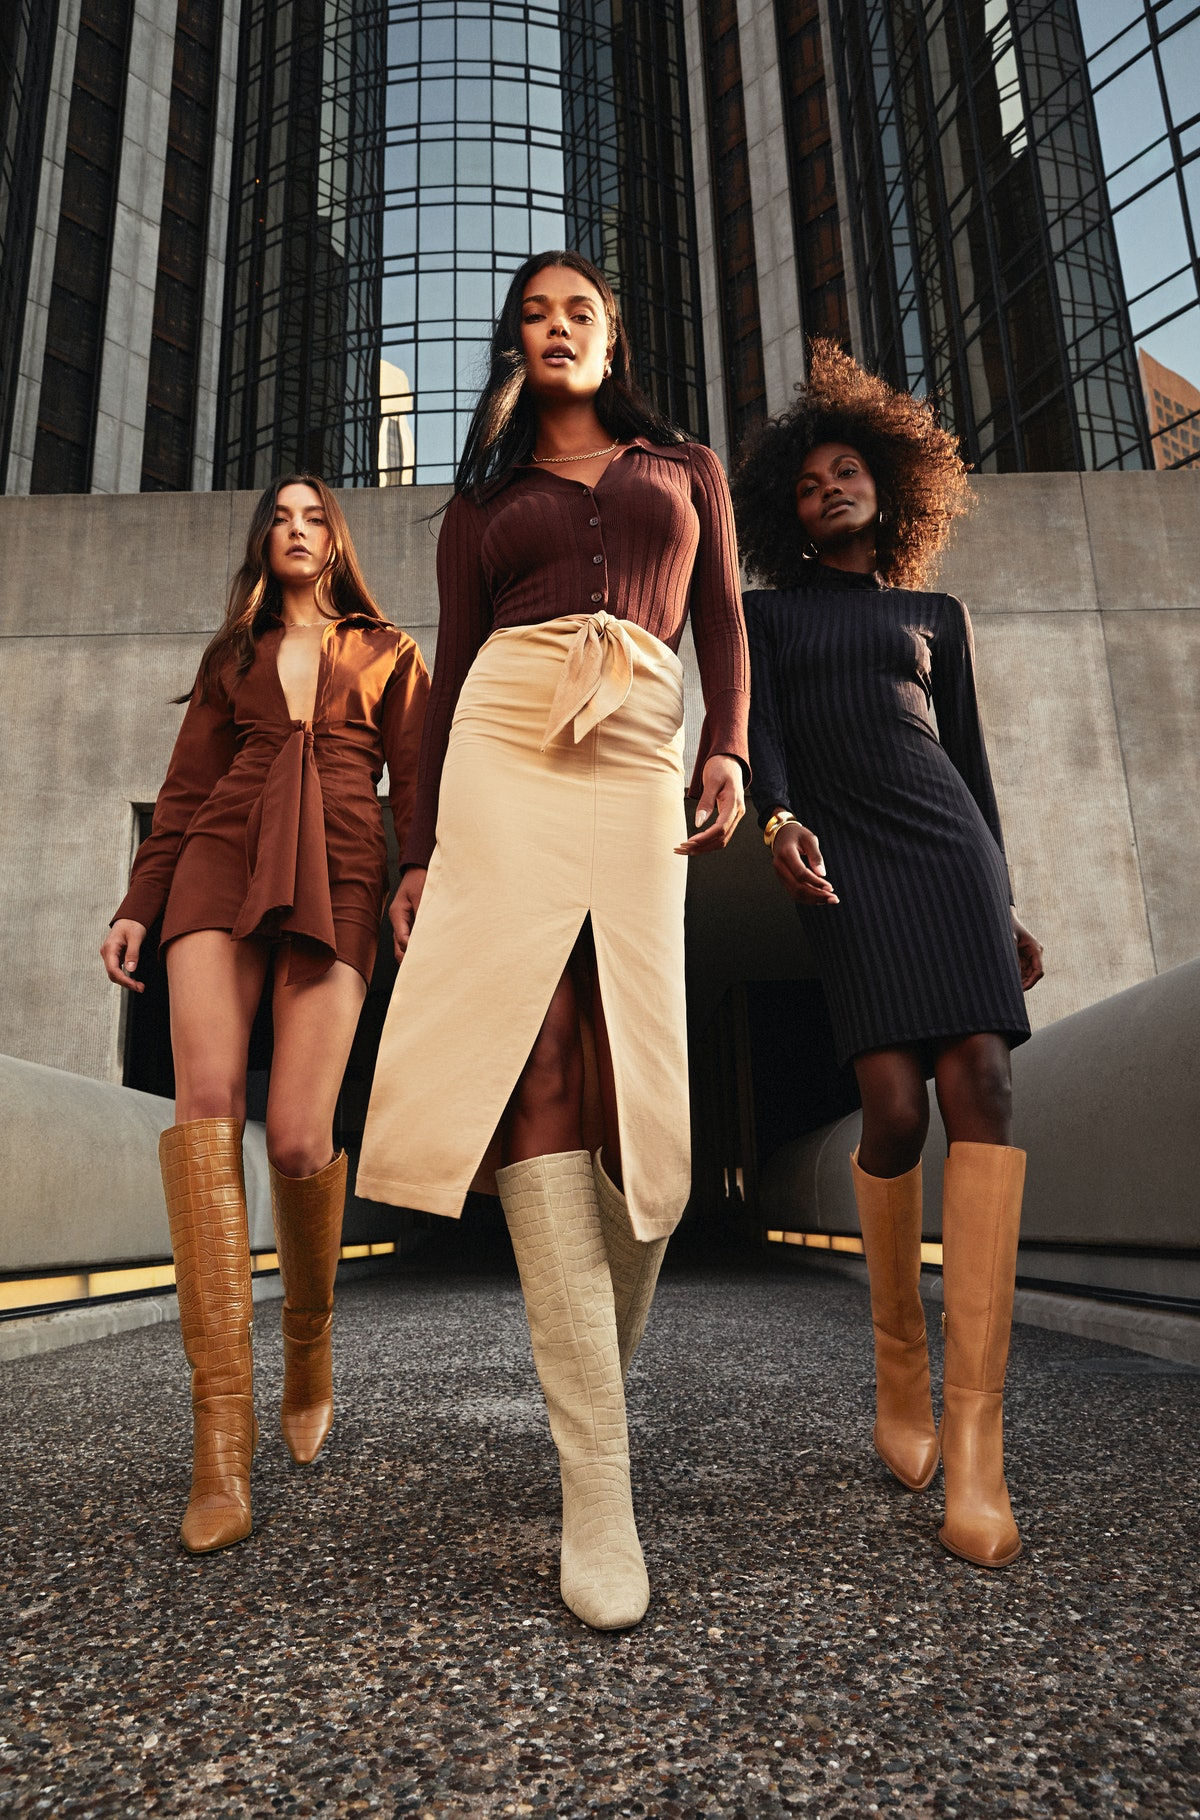 Vince Camuto Fall 2021 campaign.